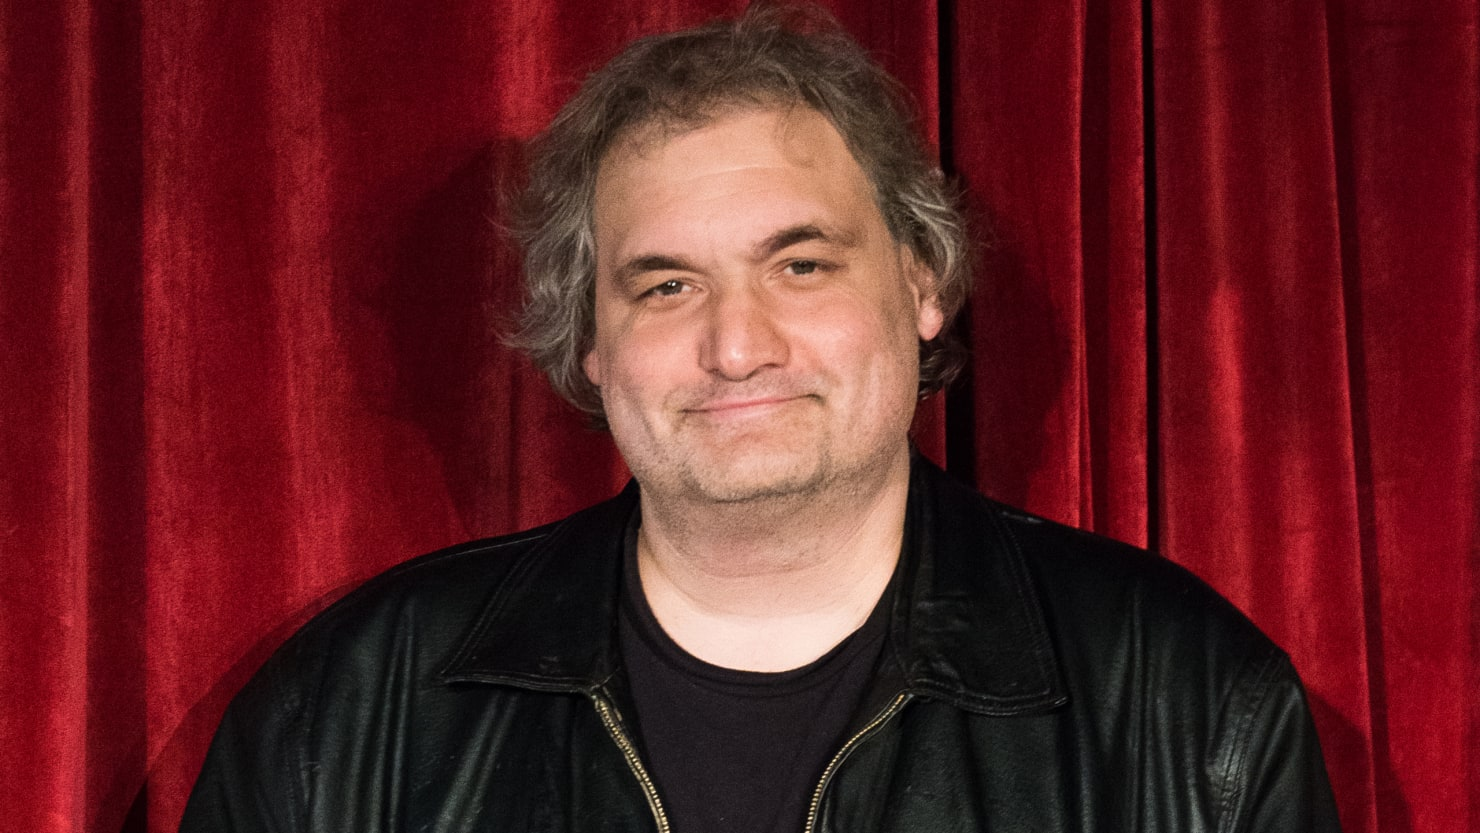 Artie lange dating